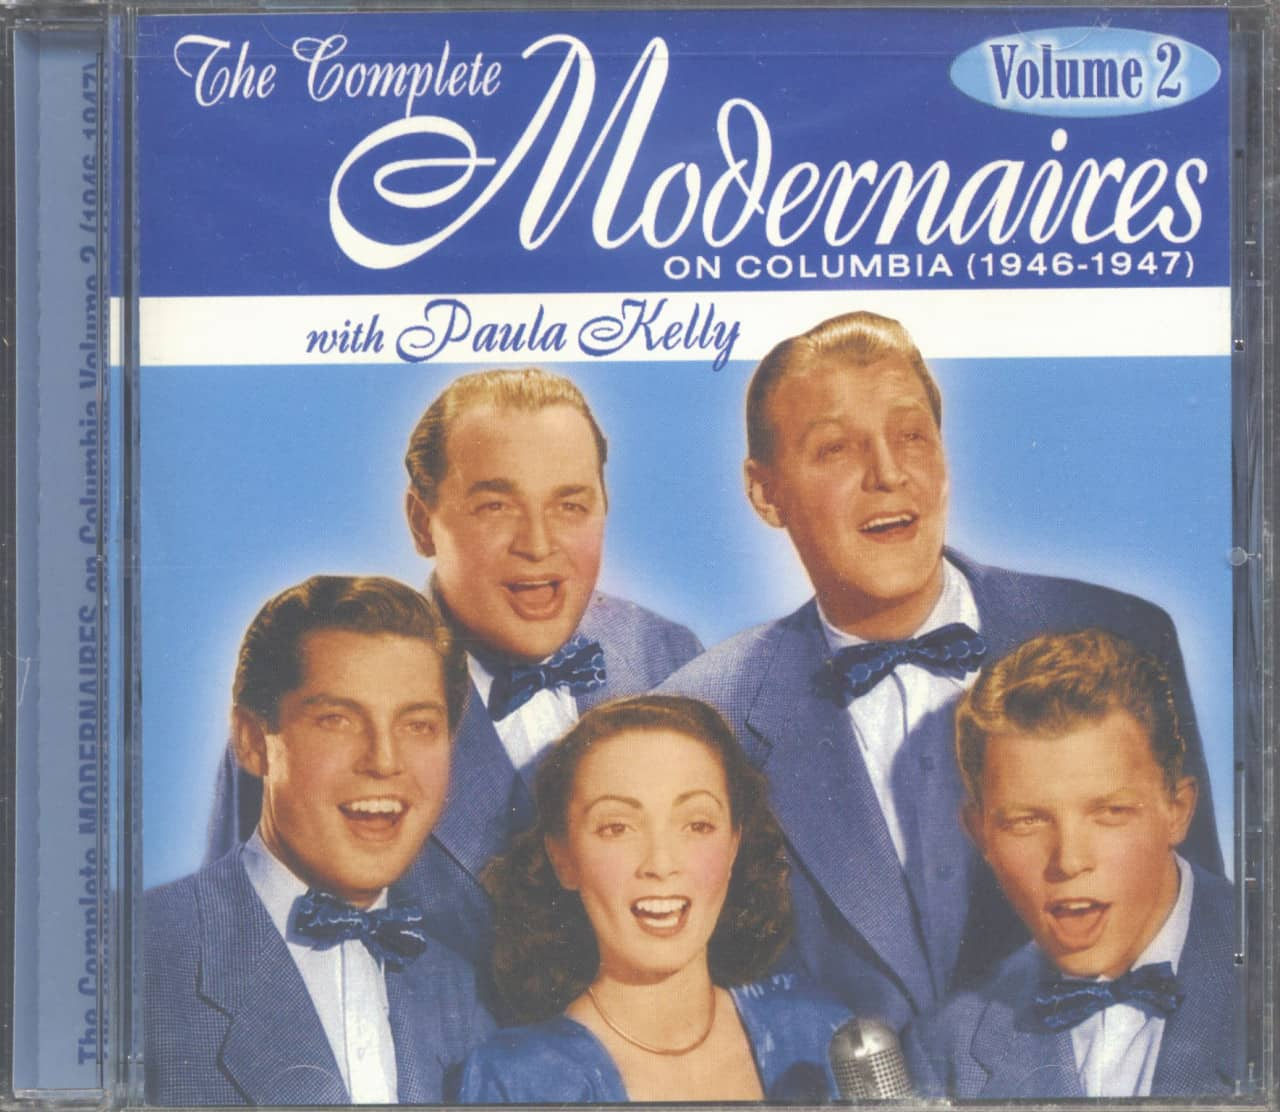 The Modernaires - The Complete Modernaires With Paula Kelly On Columbia Vol.2 - 1946-47 (CD)